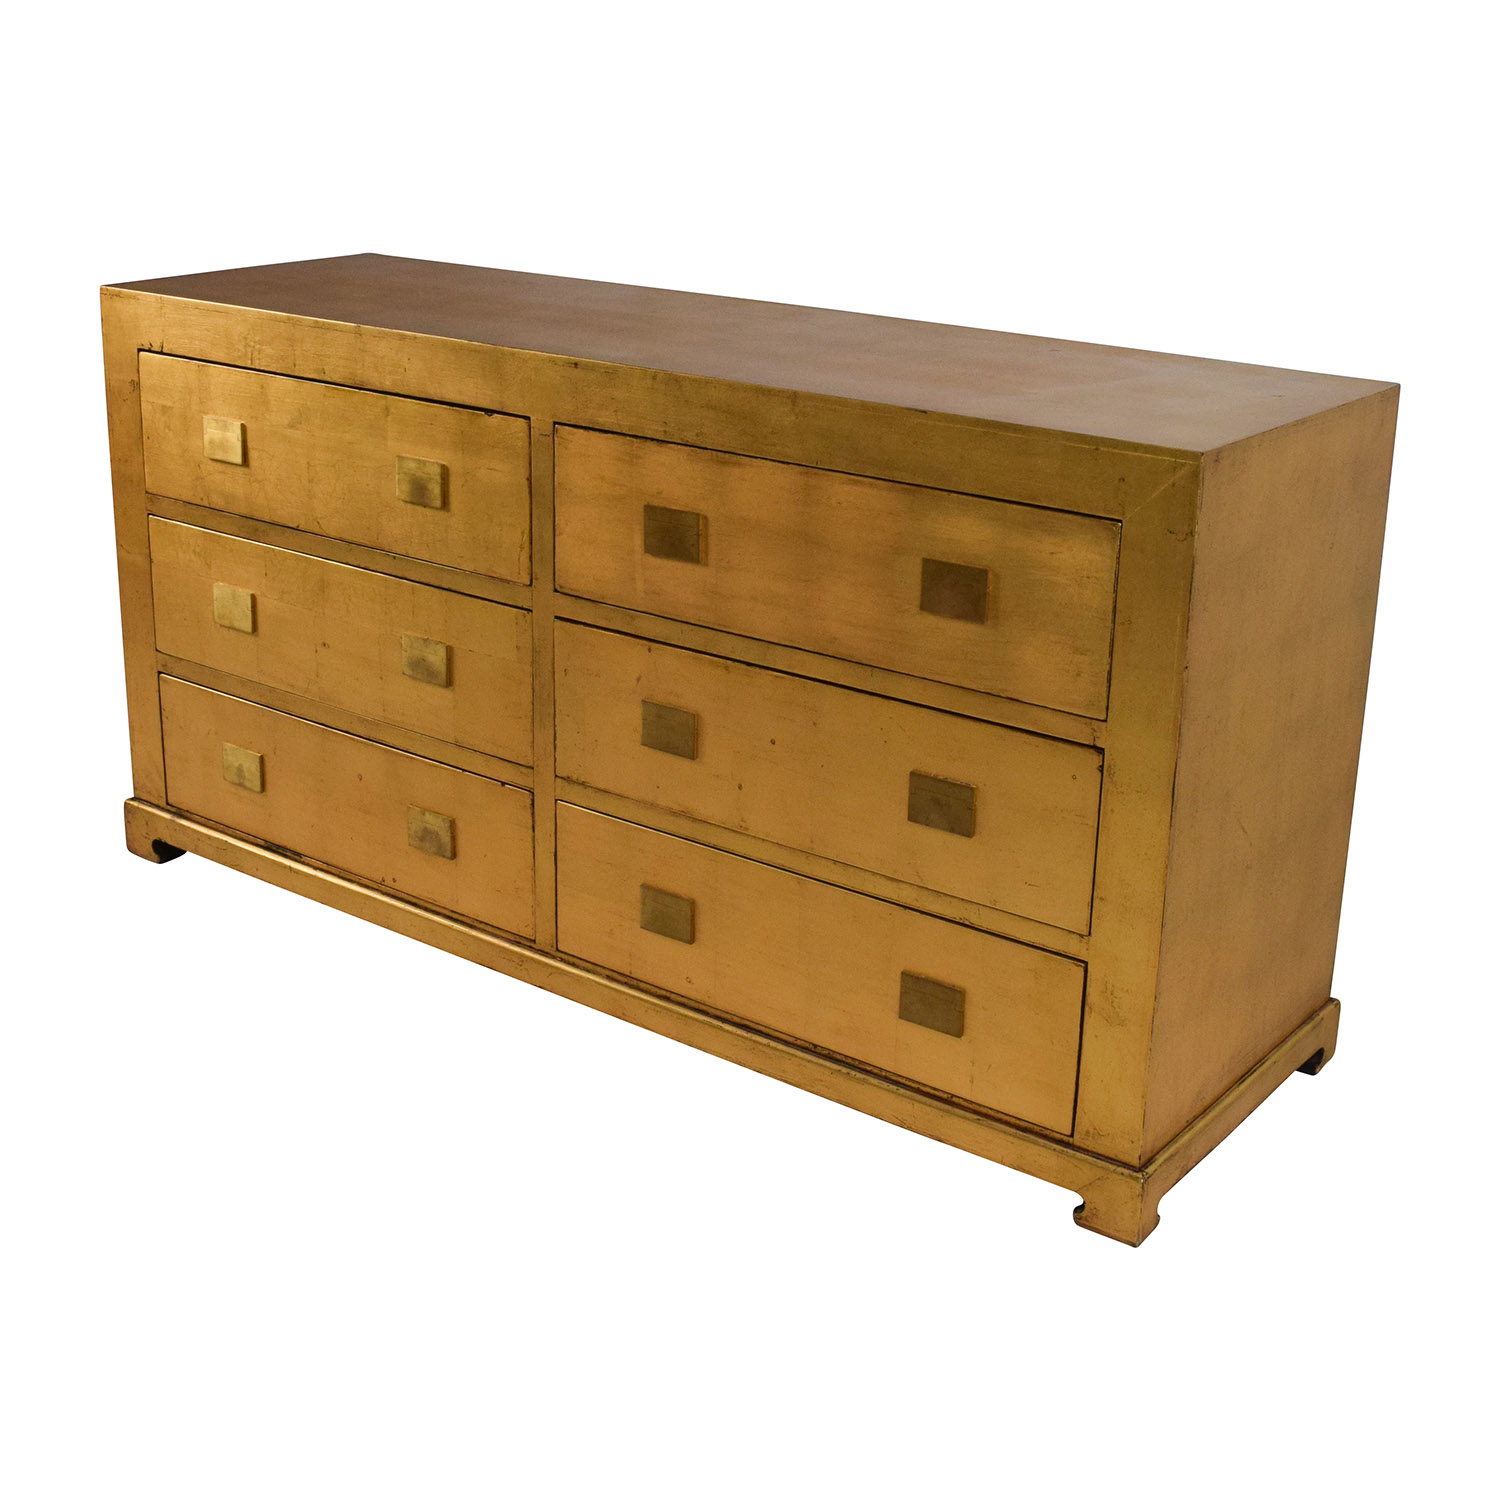 87 off asian barn nyc asian barn six drawer dresser for Asian furniture nyc